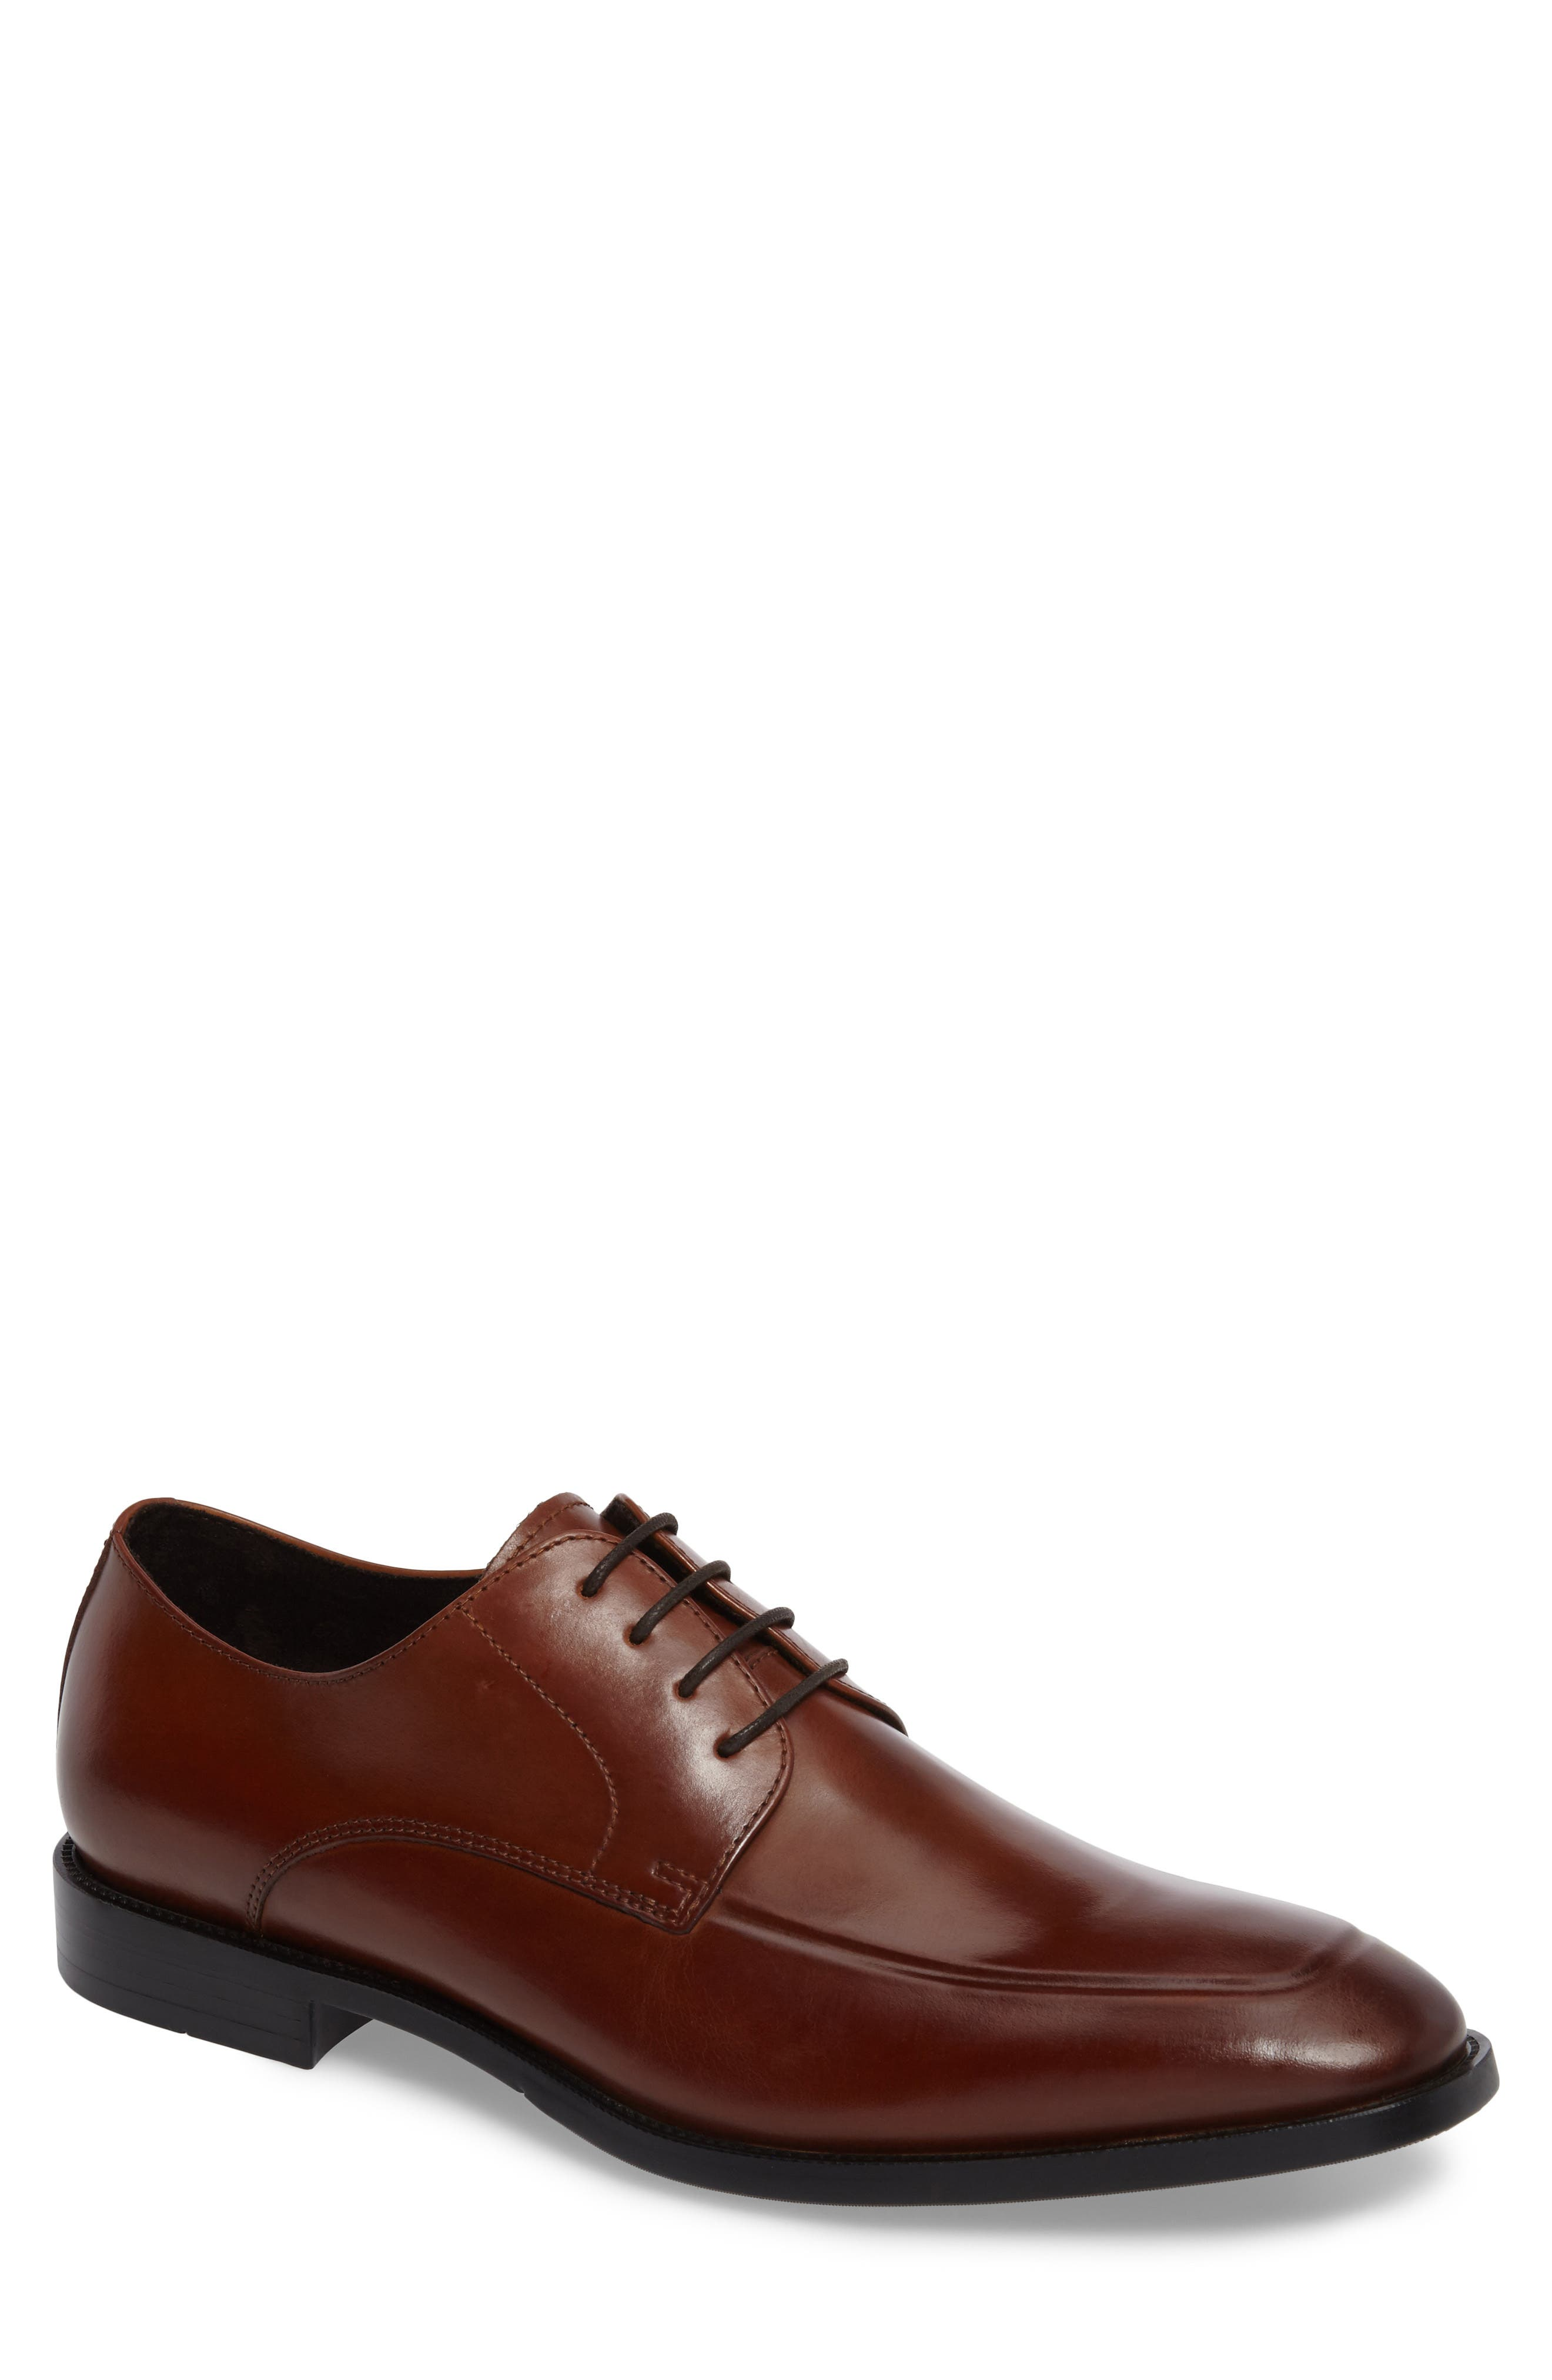 Apron Toe Derby,                         Main,                         color, Brandy Leather